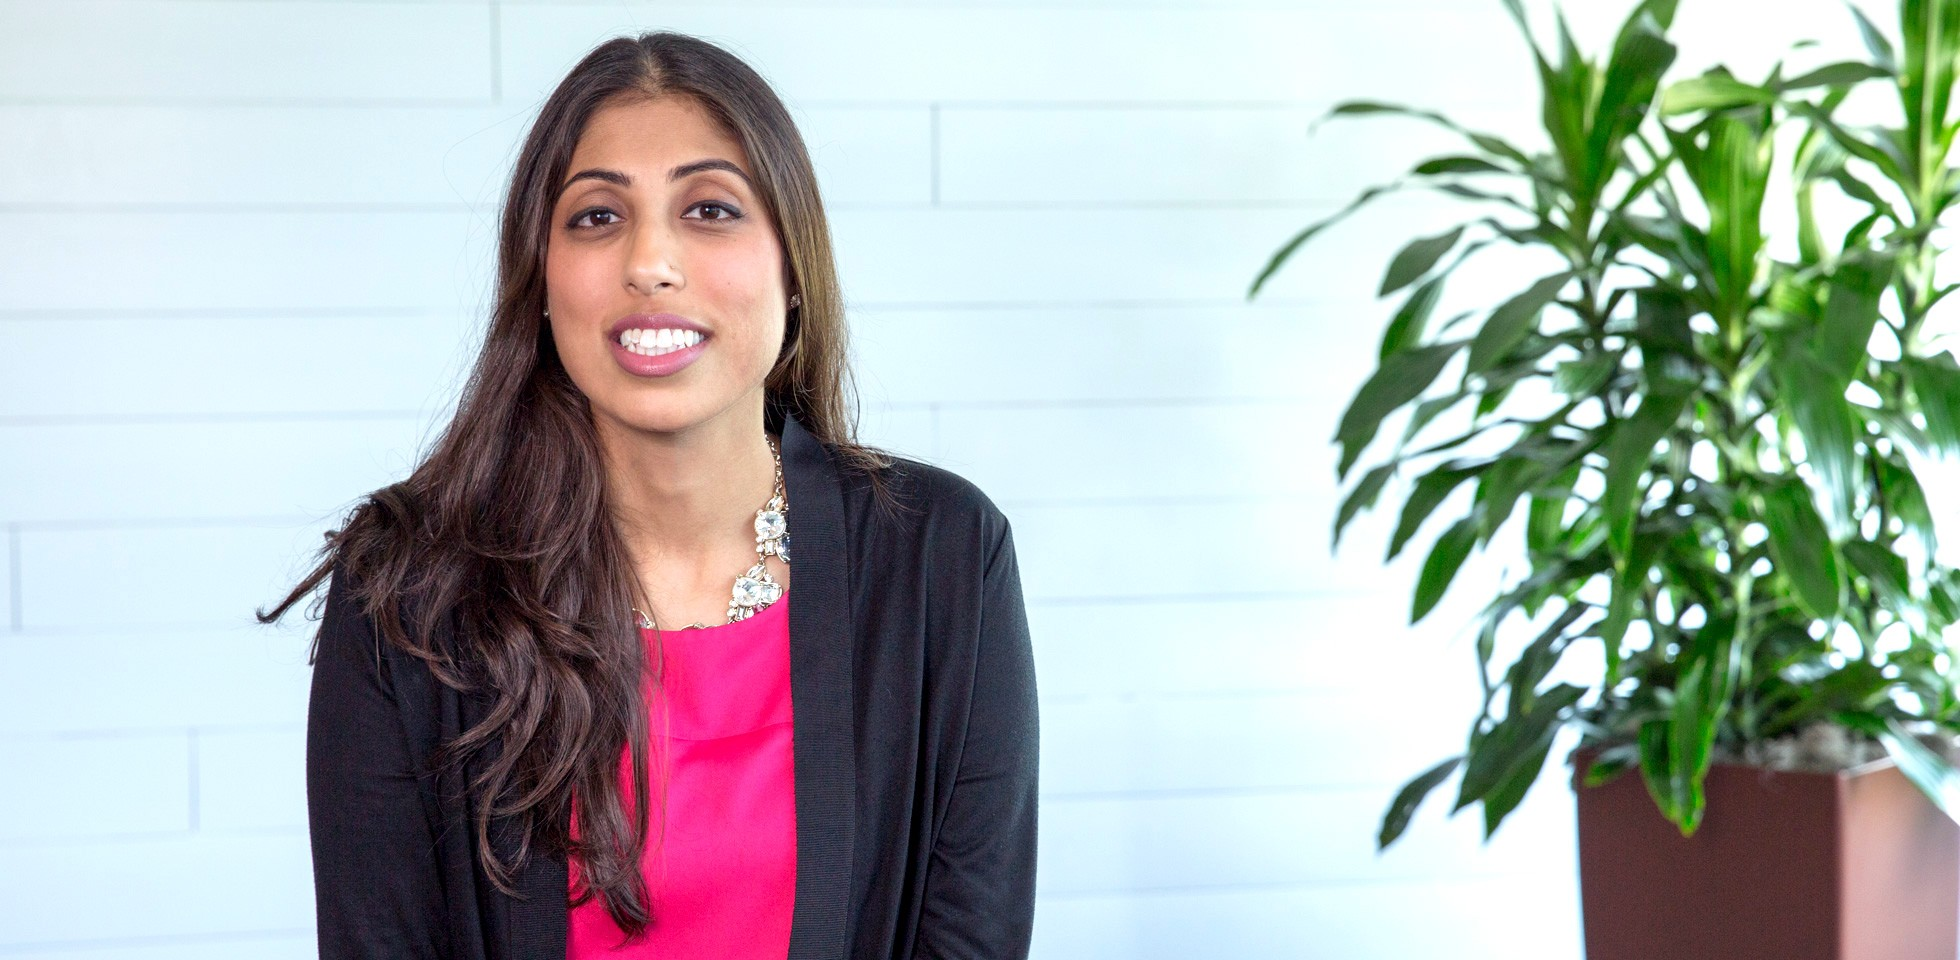 Sadia Ahmed, Senior Manager Business Intelligence - Wilton Brands Careers